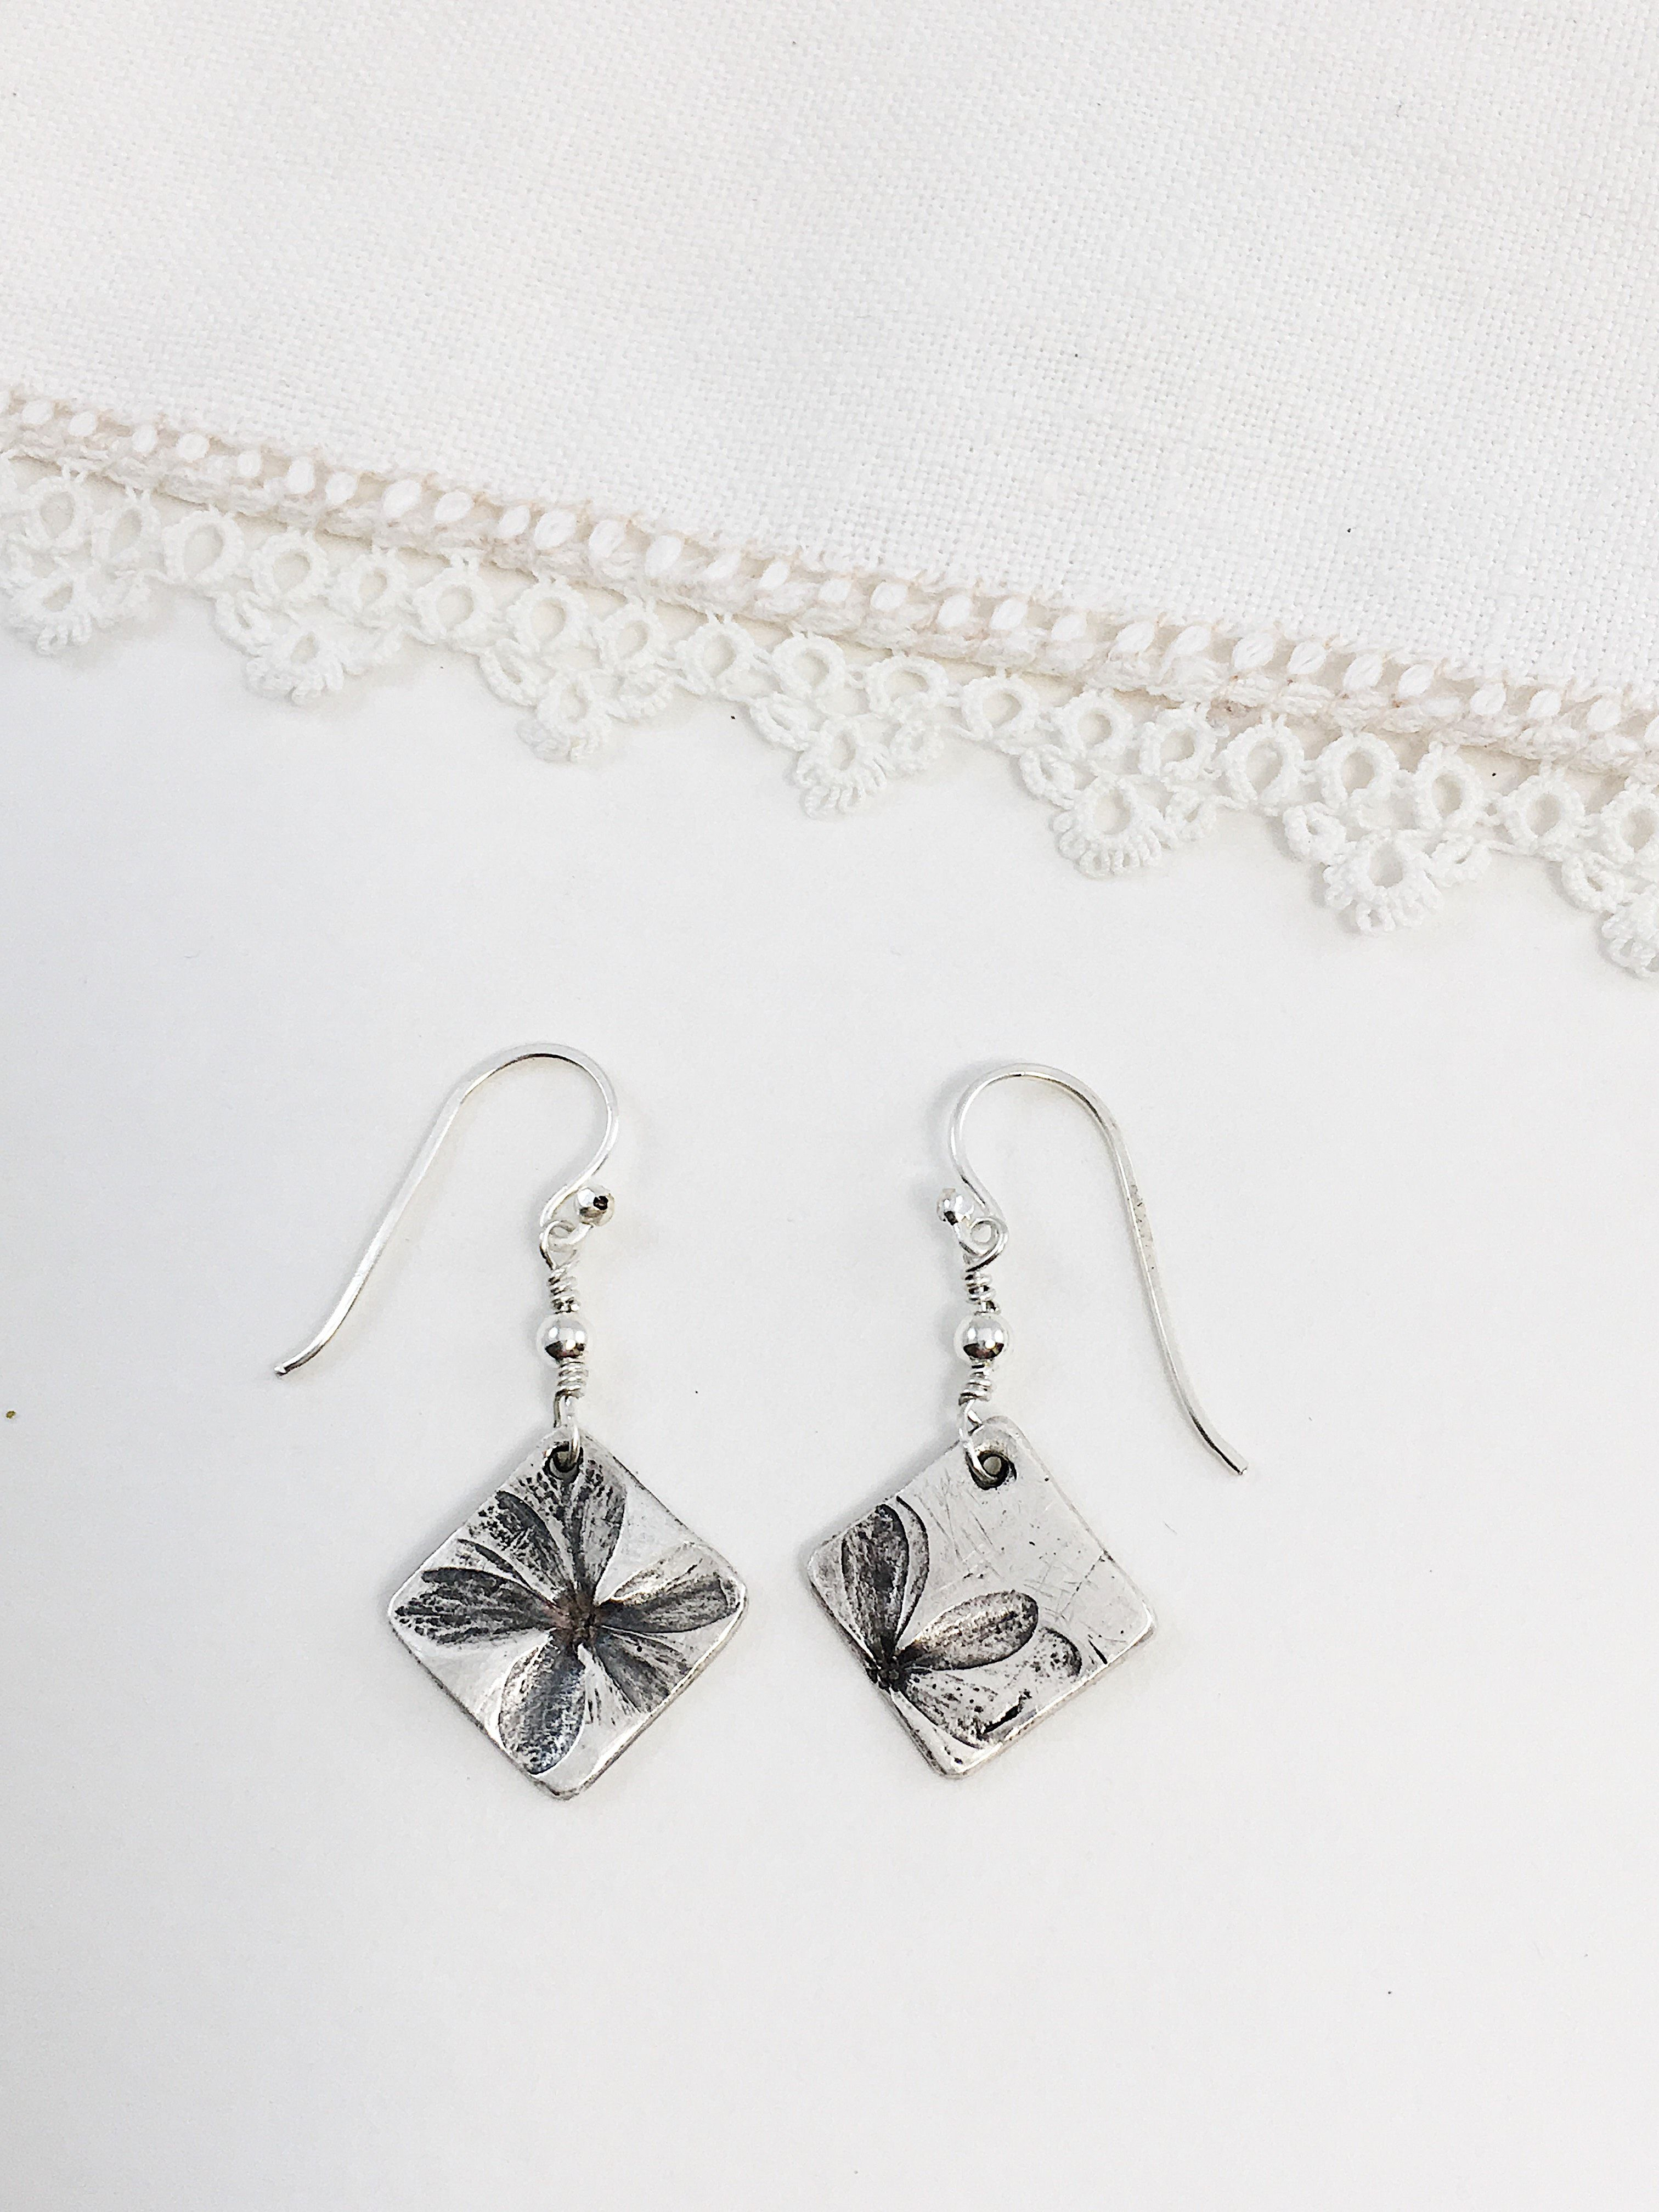 Pure Silver Flower Earrings | AC Jewelry Earrings: pebble